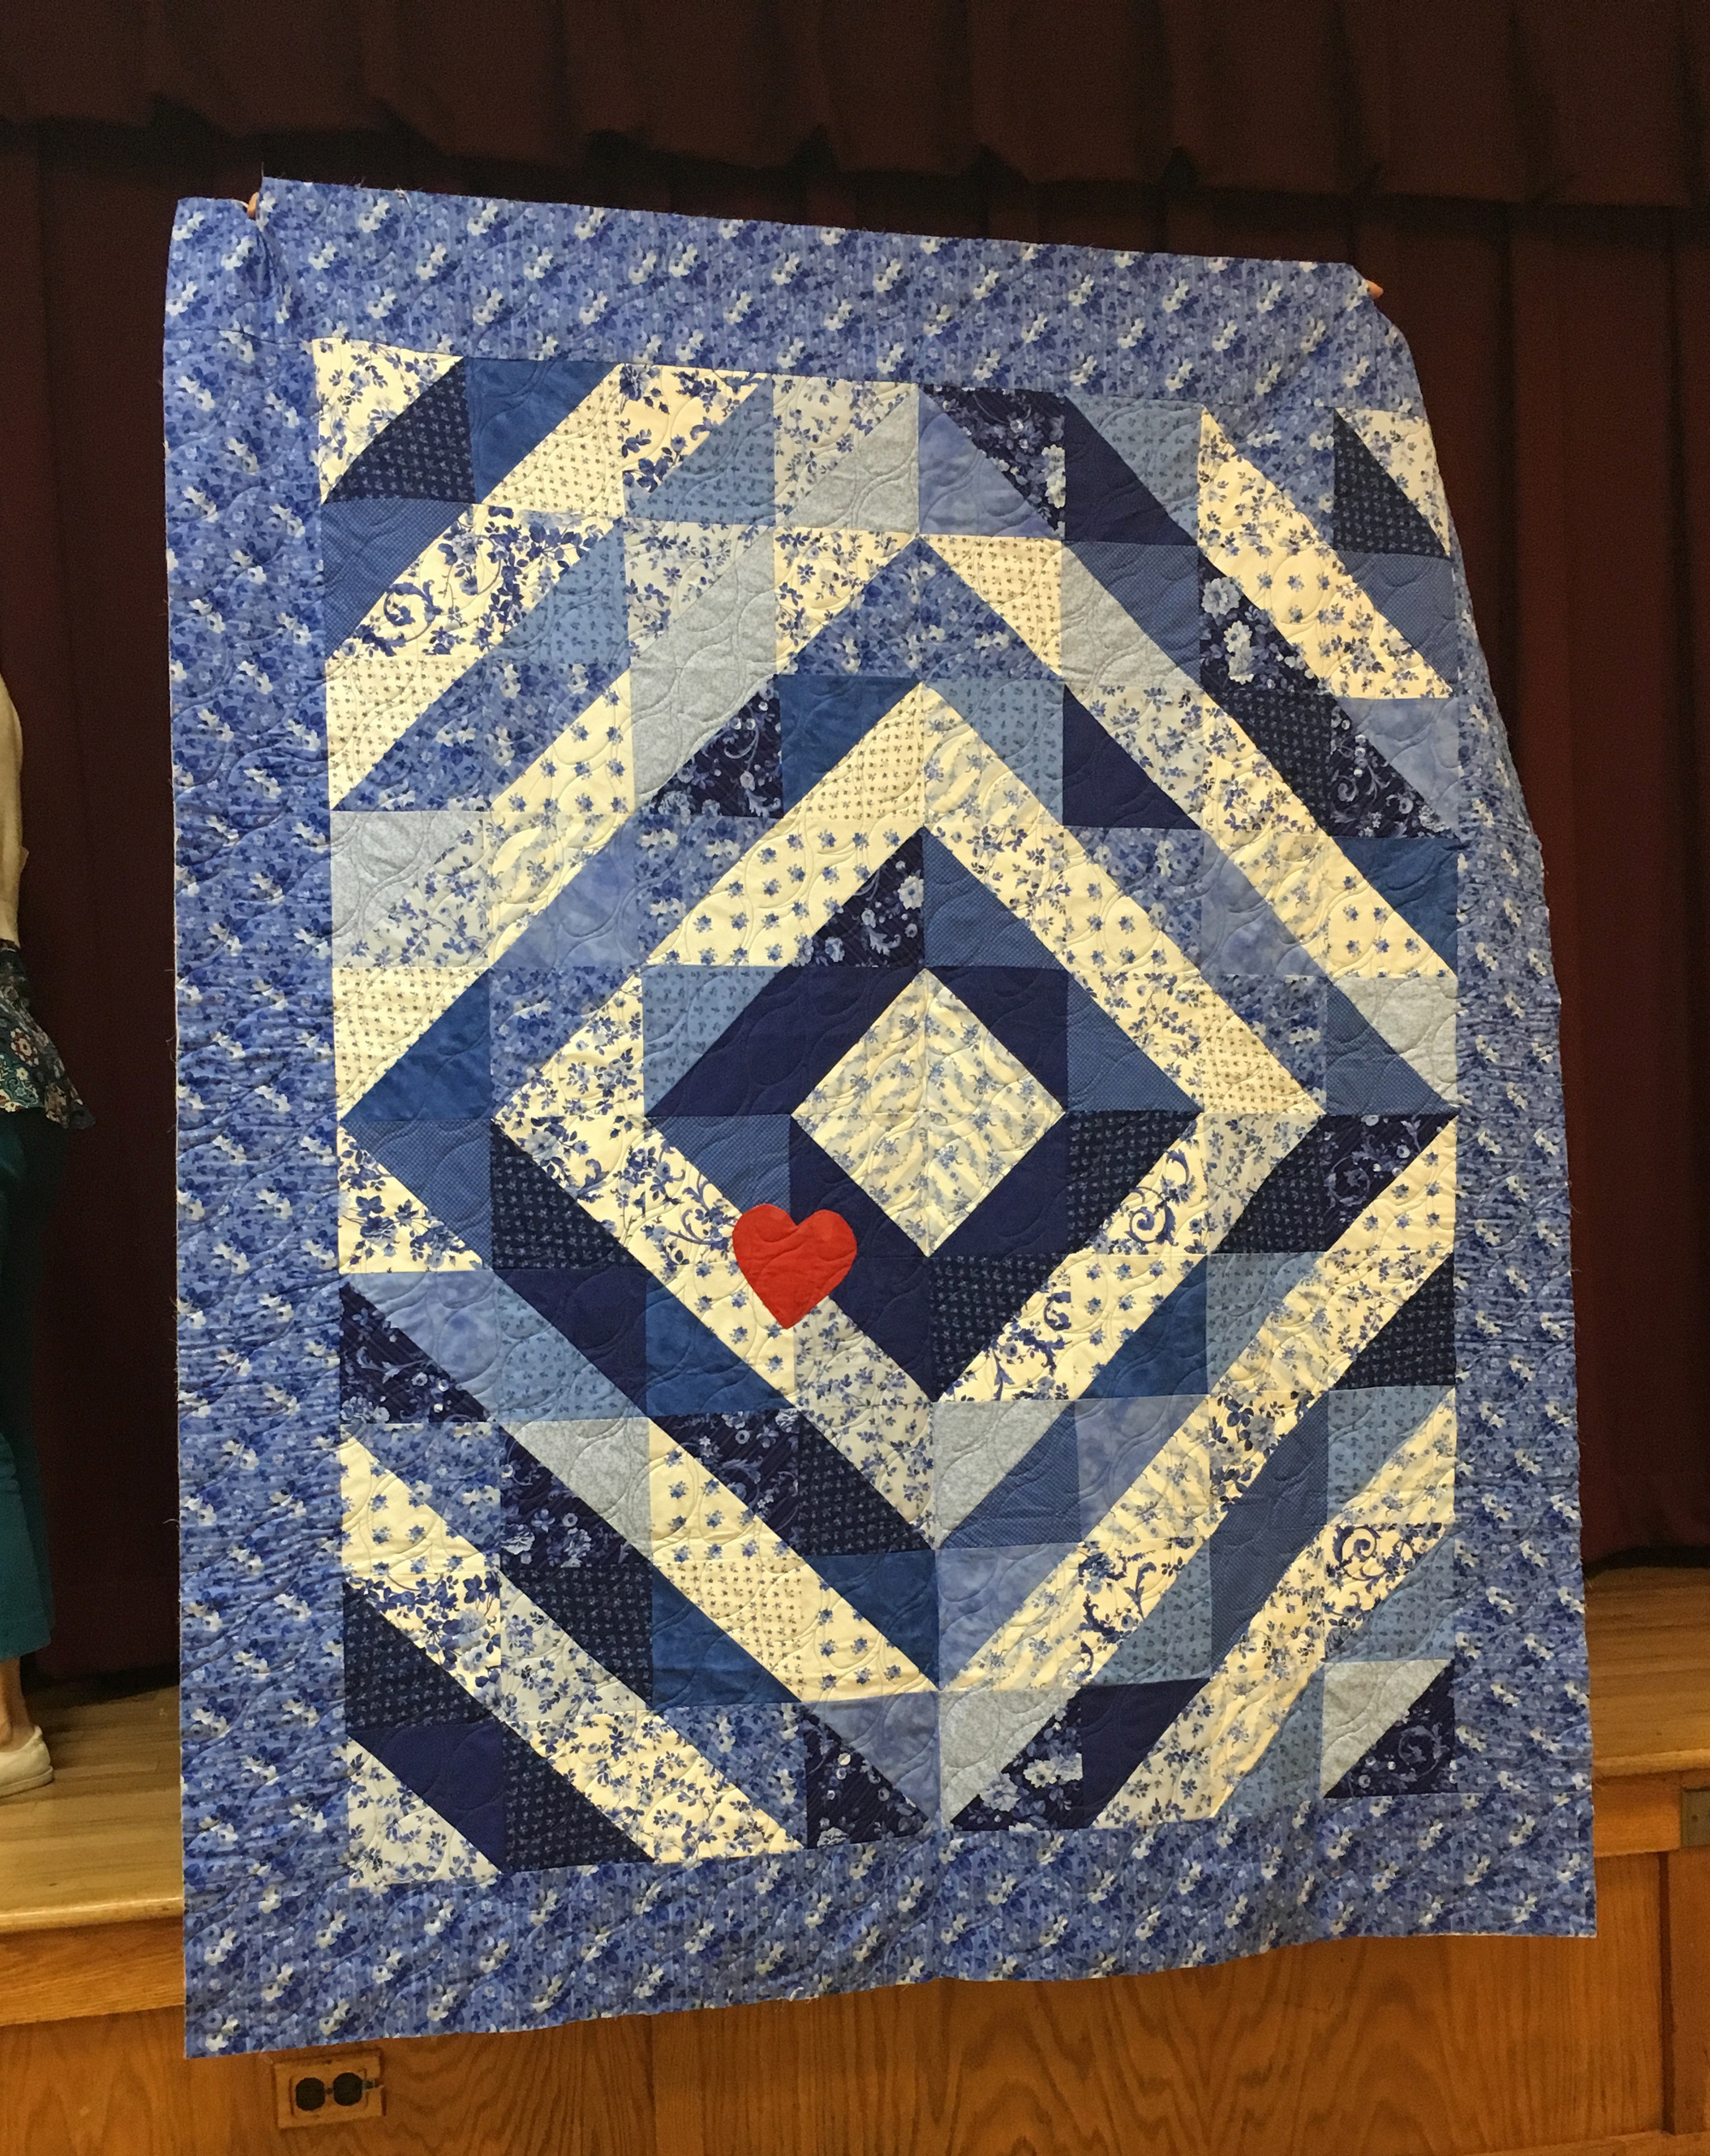 H.O.P.S. Labor of Love quilt made by Karen Mahoney